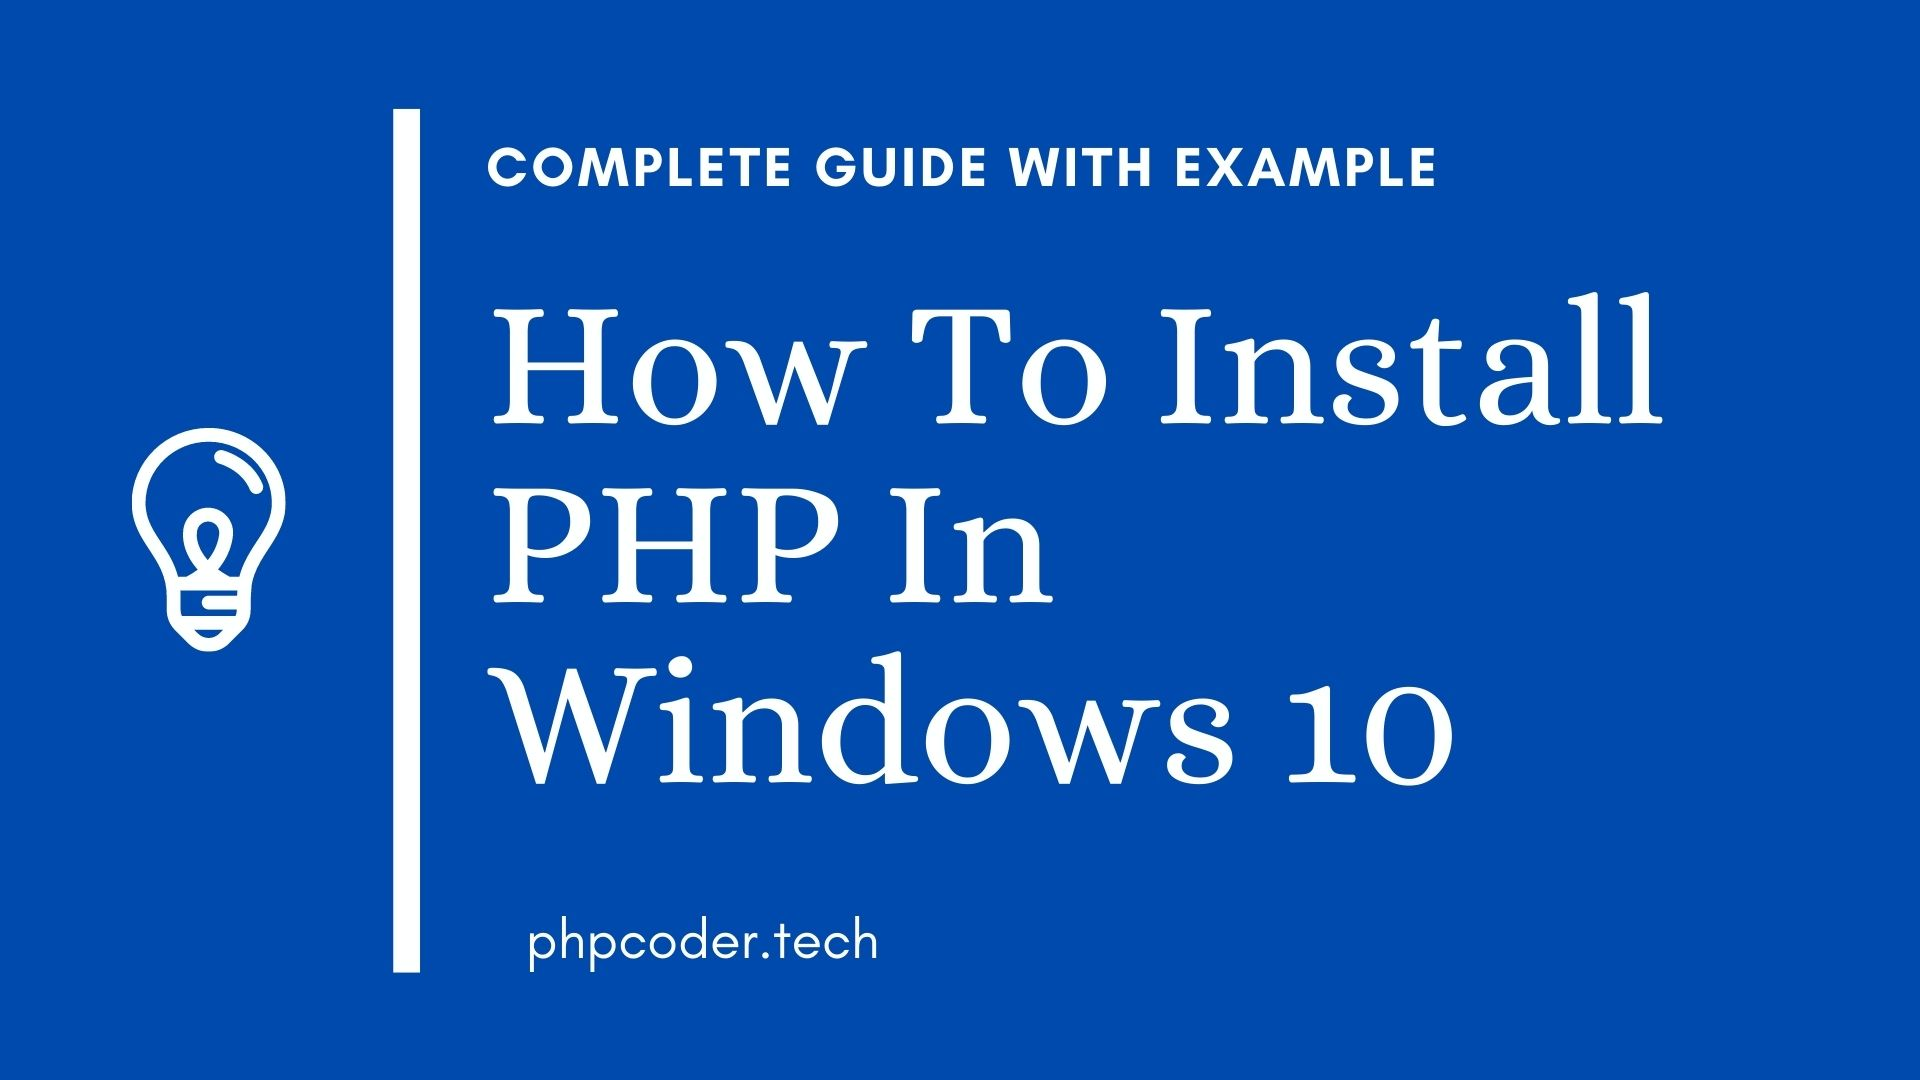 How To Install PHP In Windows 10 - PHPCODER.TECH